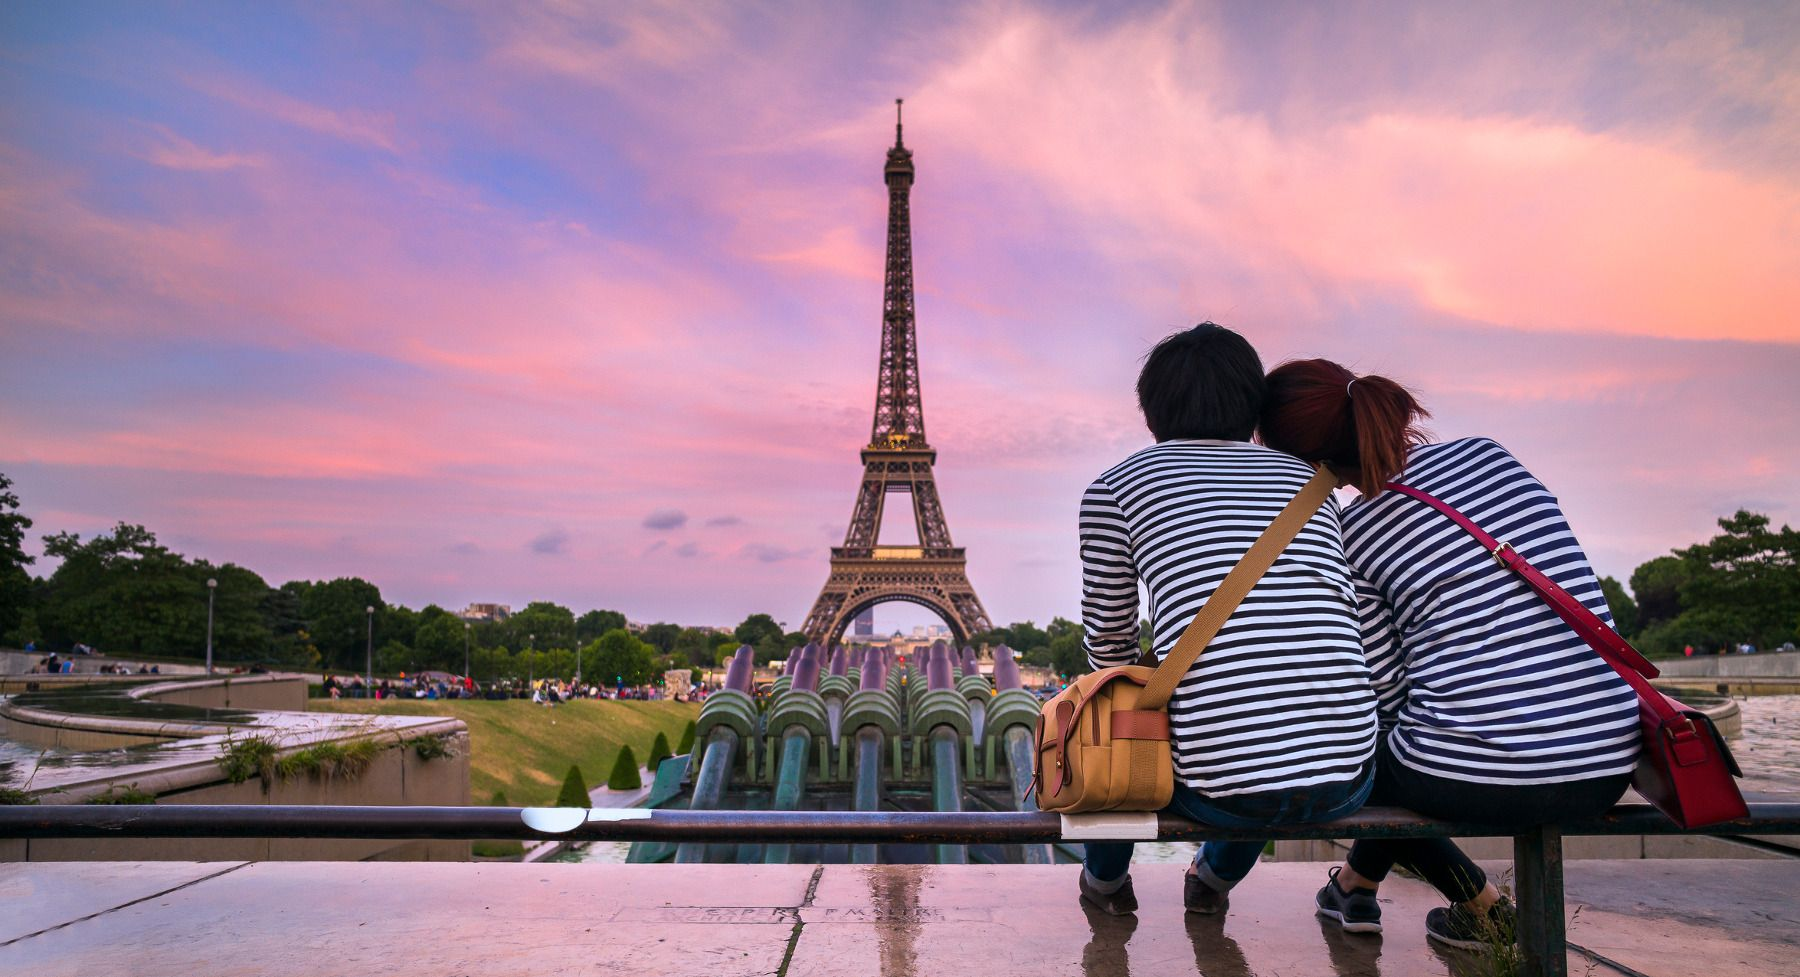 Parisian-tourists 10 Things Tourists Do In Europe That Locals Can't Stand